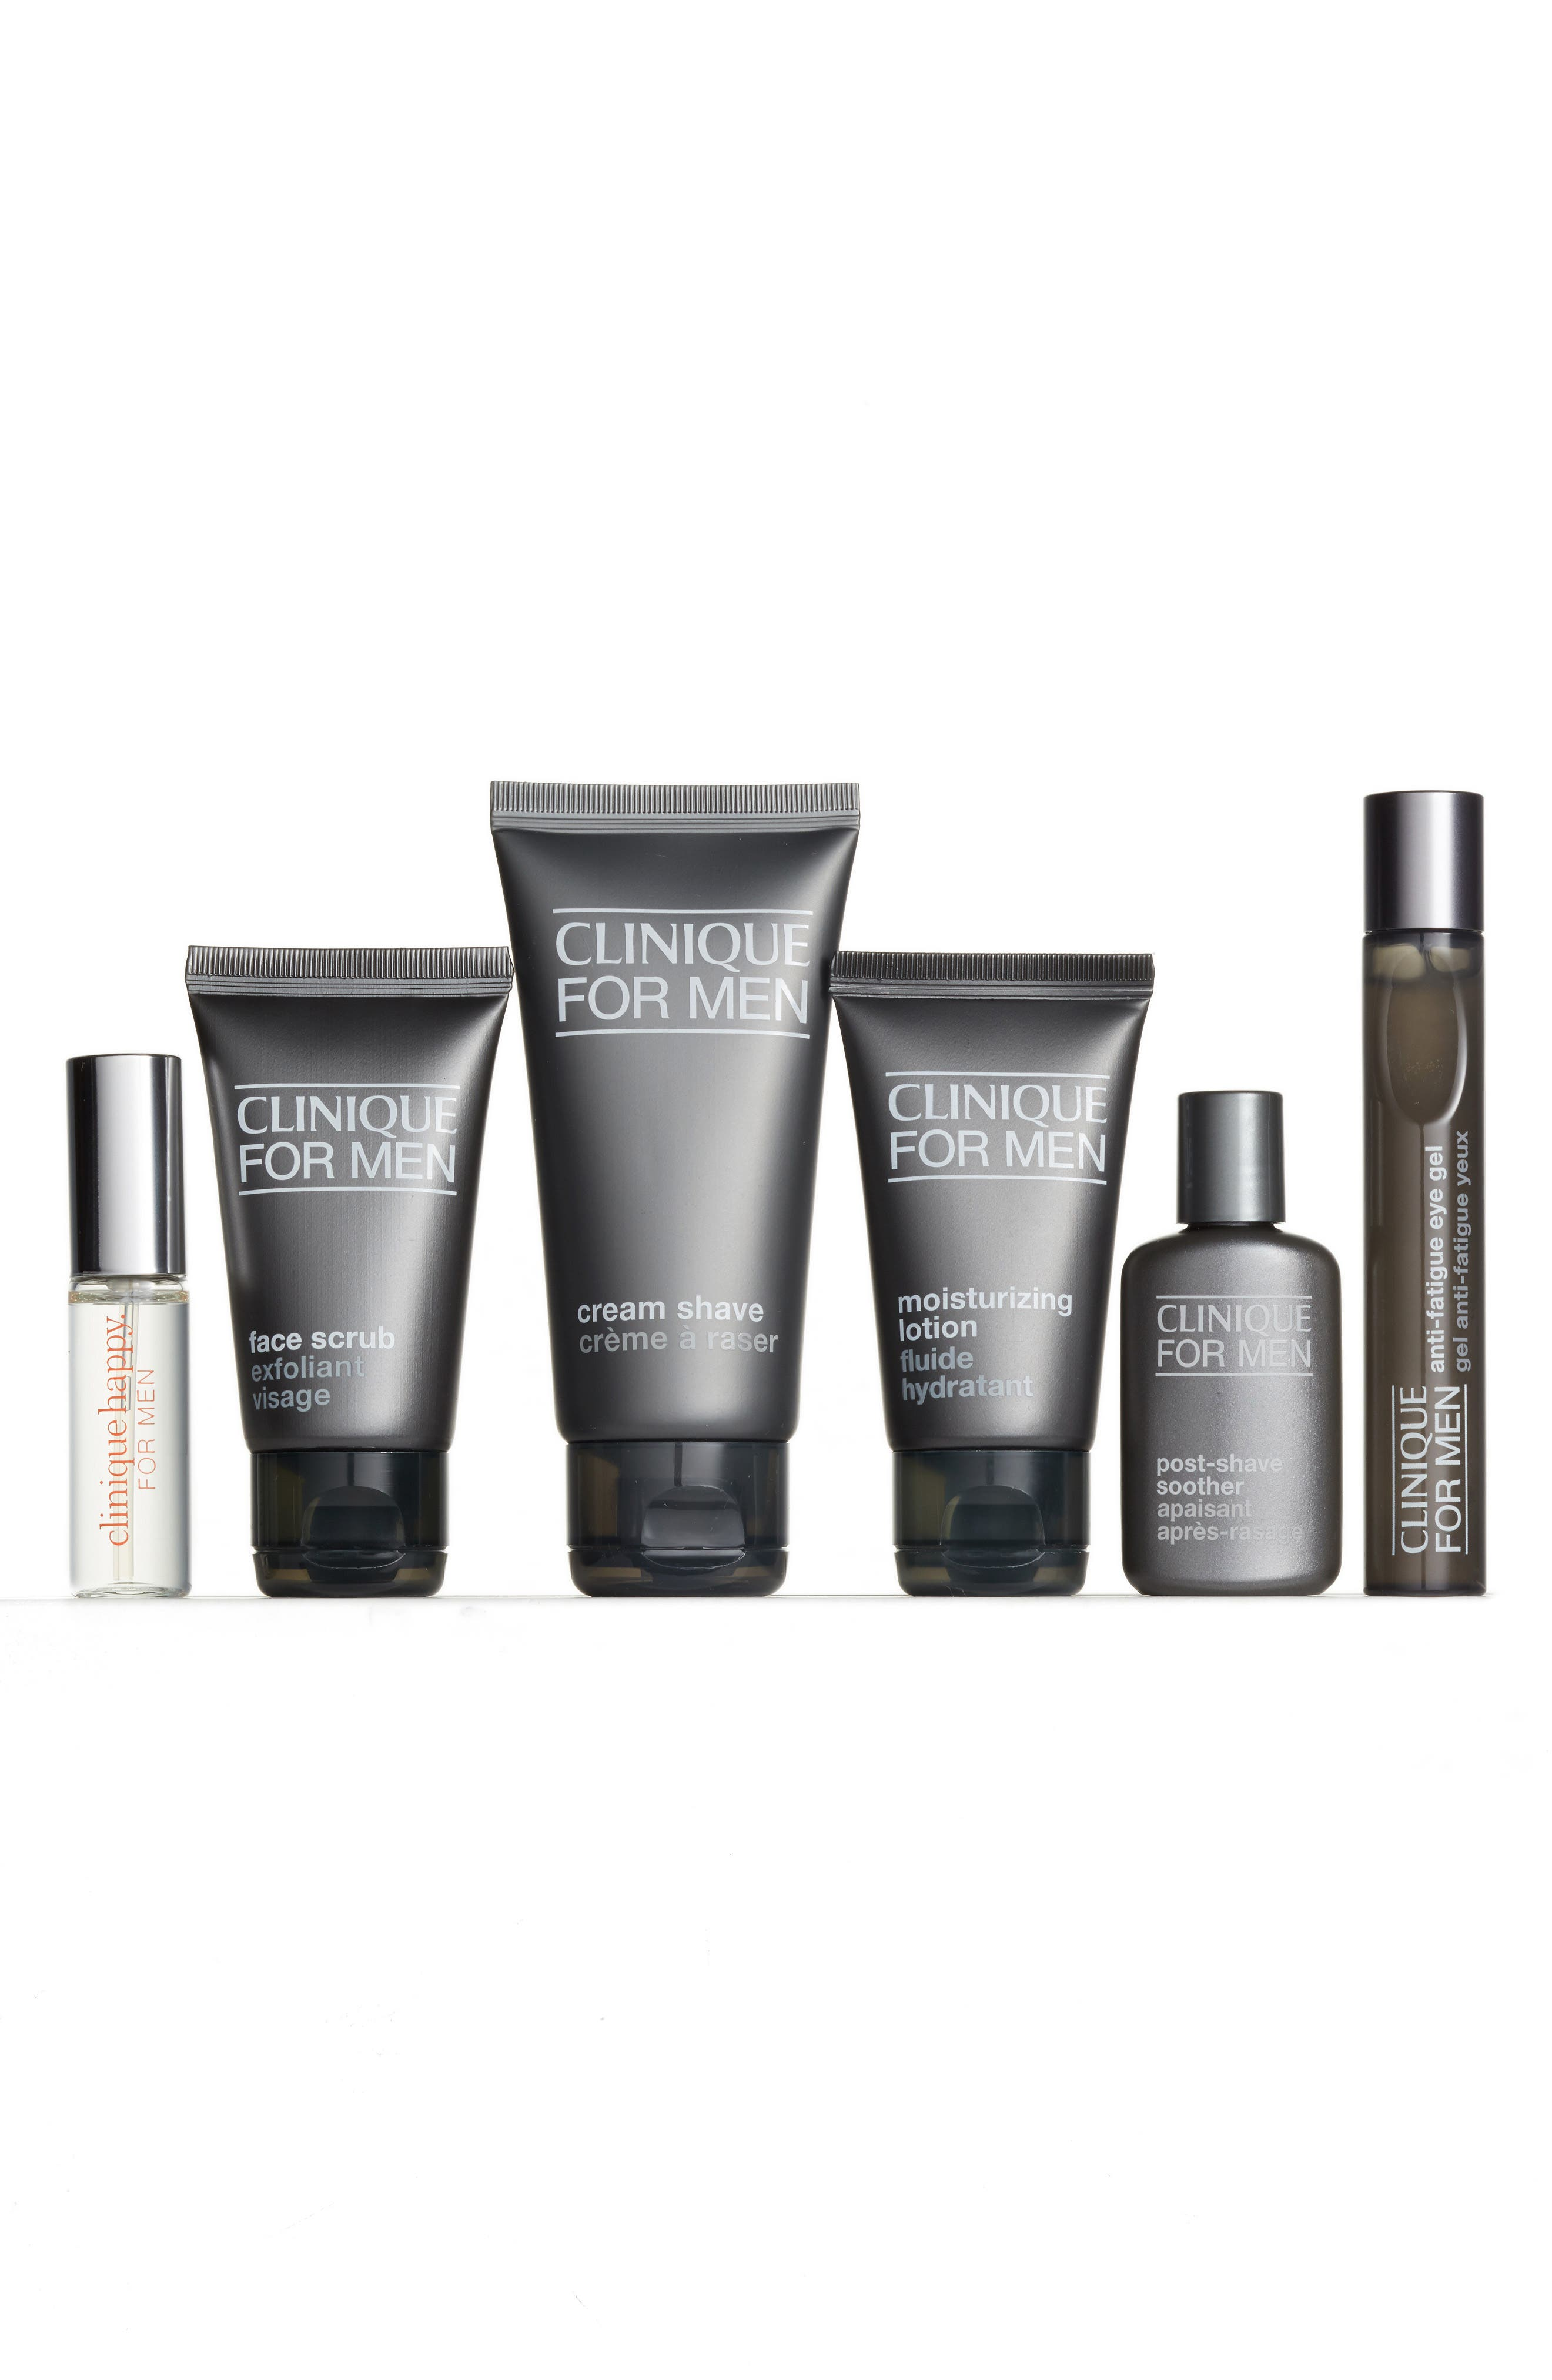 Alternate Image 1 Selected - Clinique for Men Well Traveled Well Groomed Set ($62 Value)